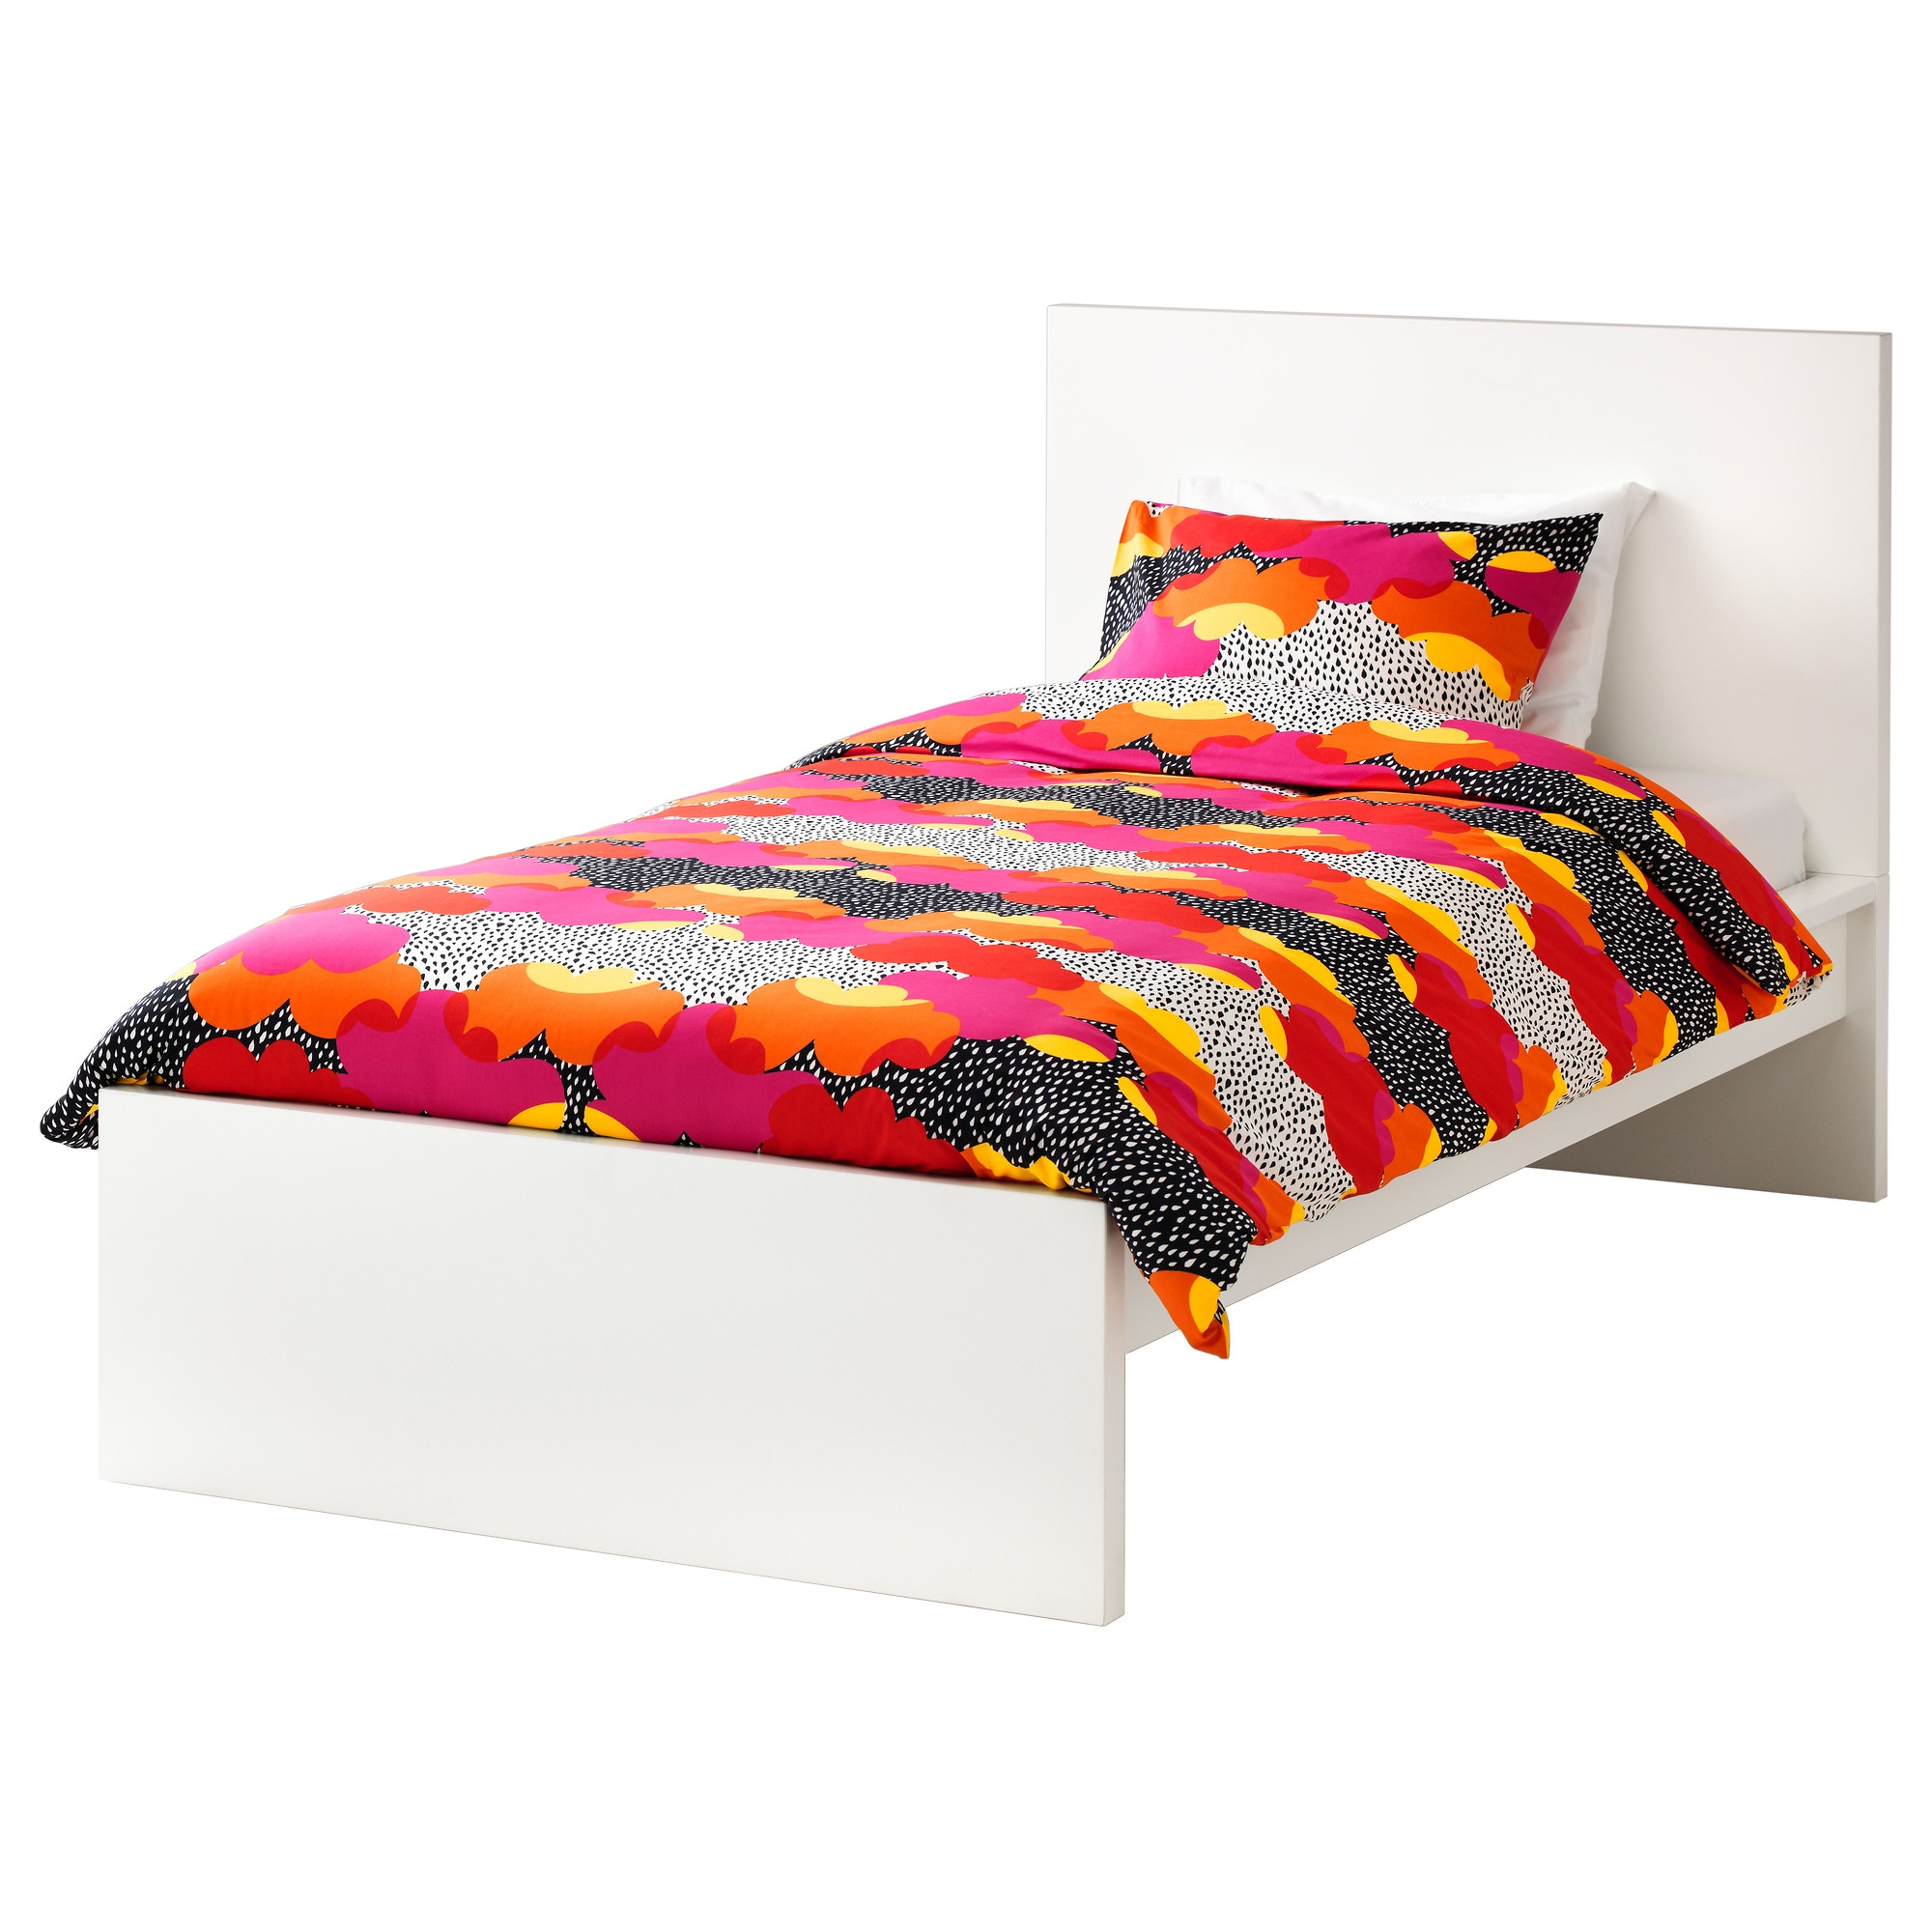 high twin bed frame CaNATbLn